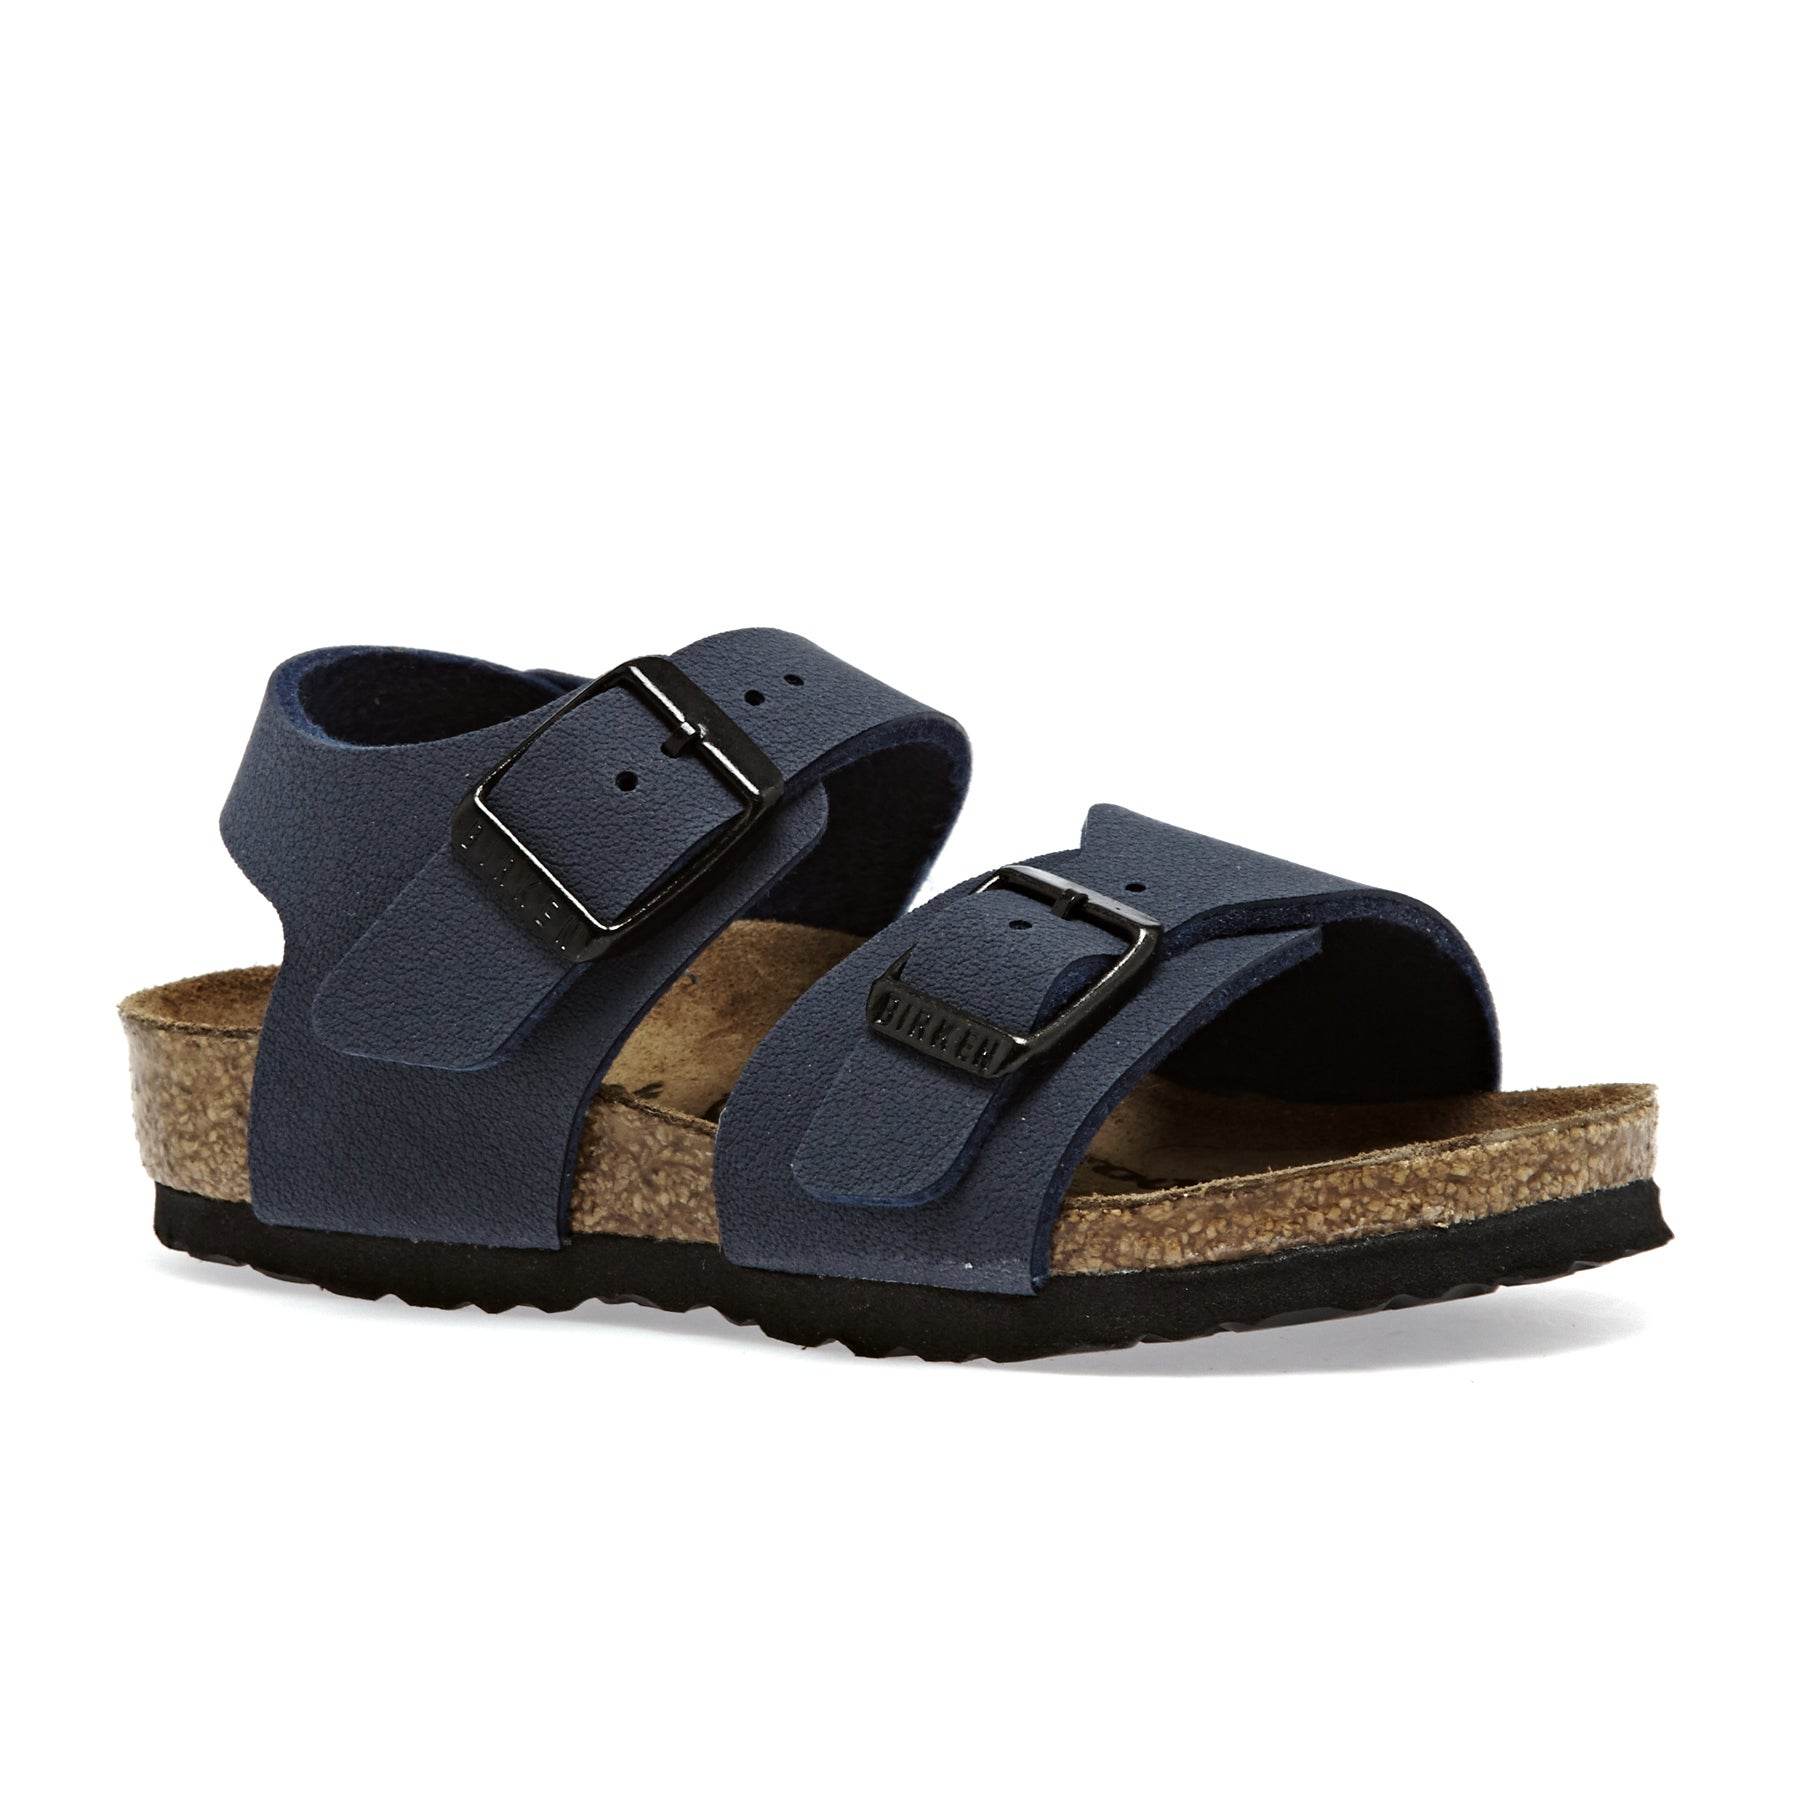 Birkenstock New York Kids Sandals - Navy